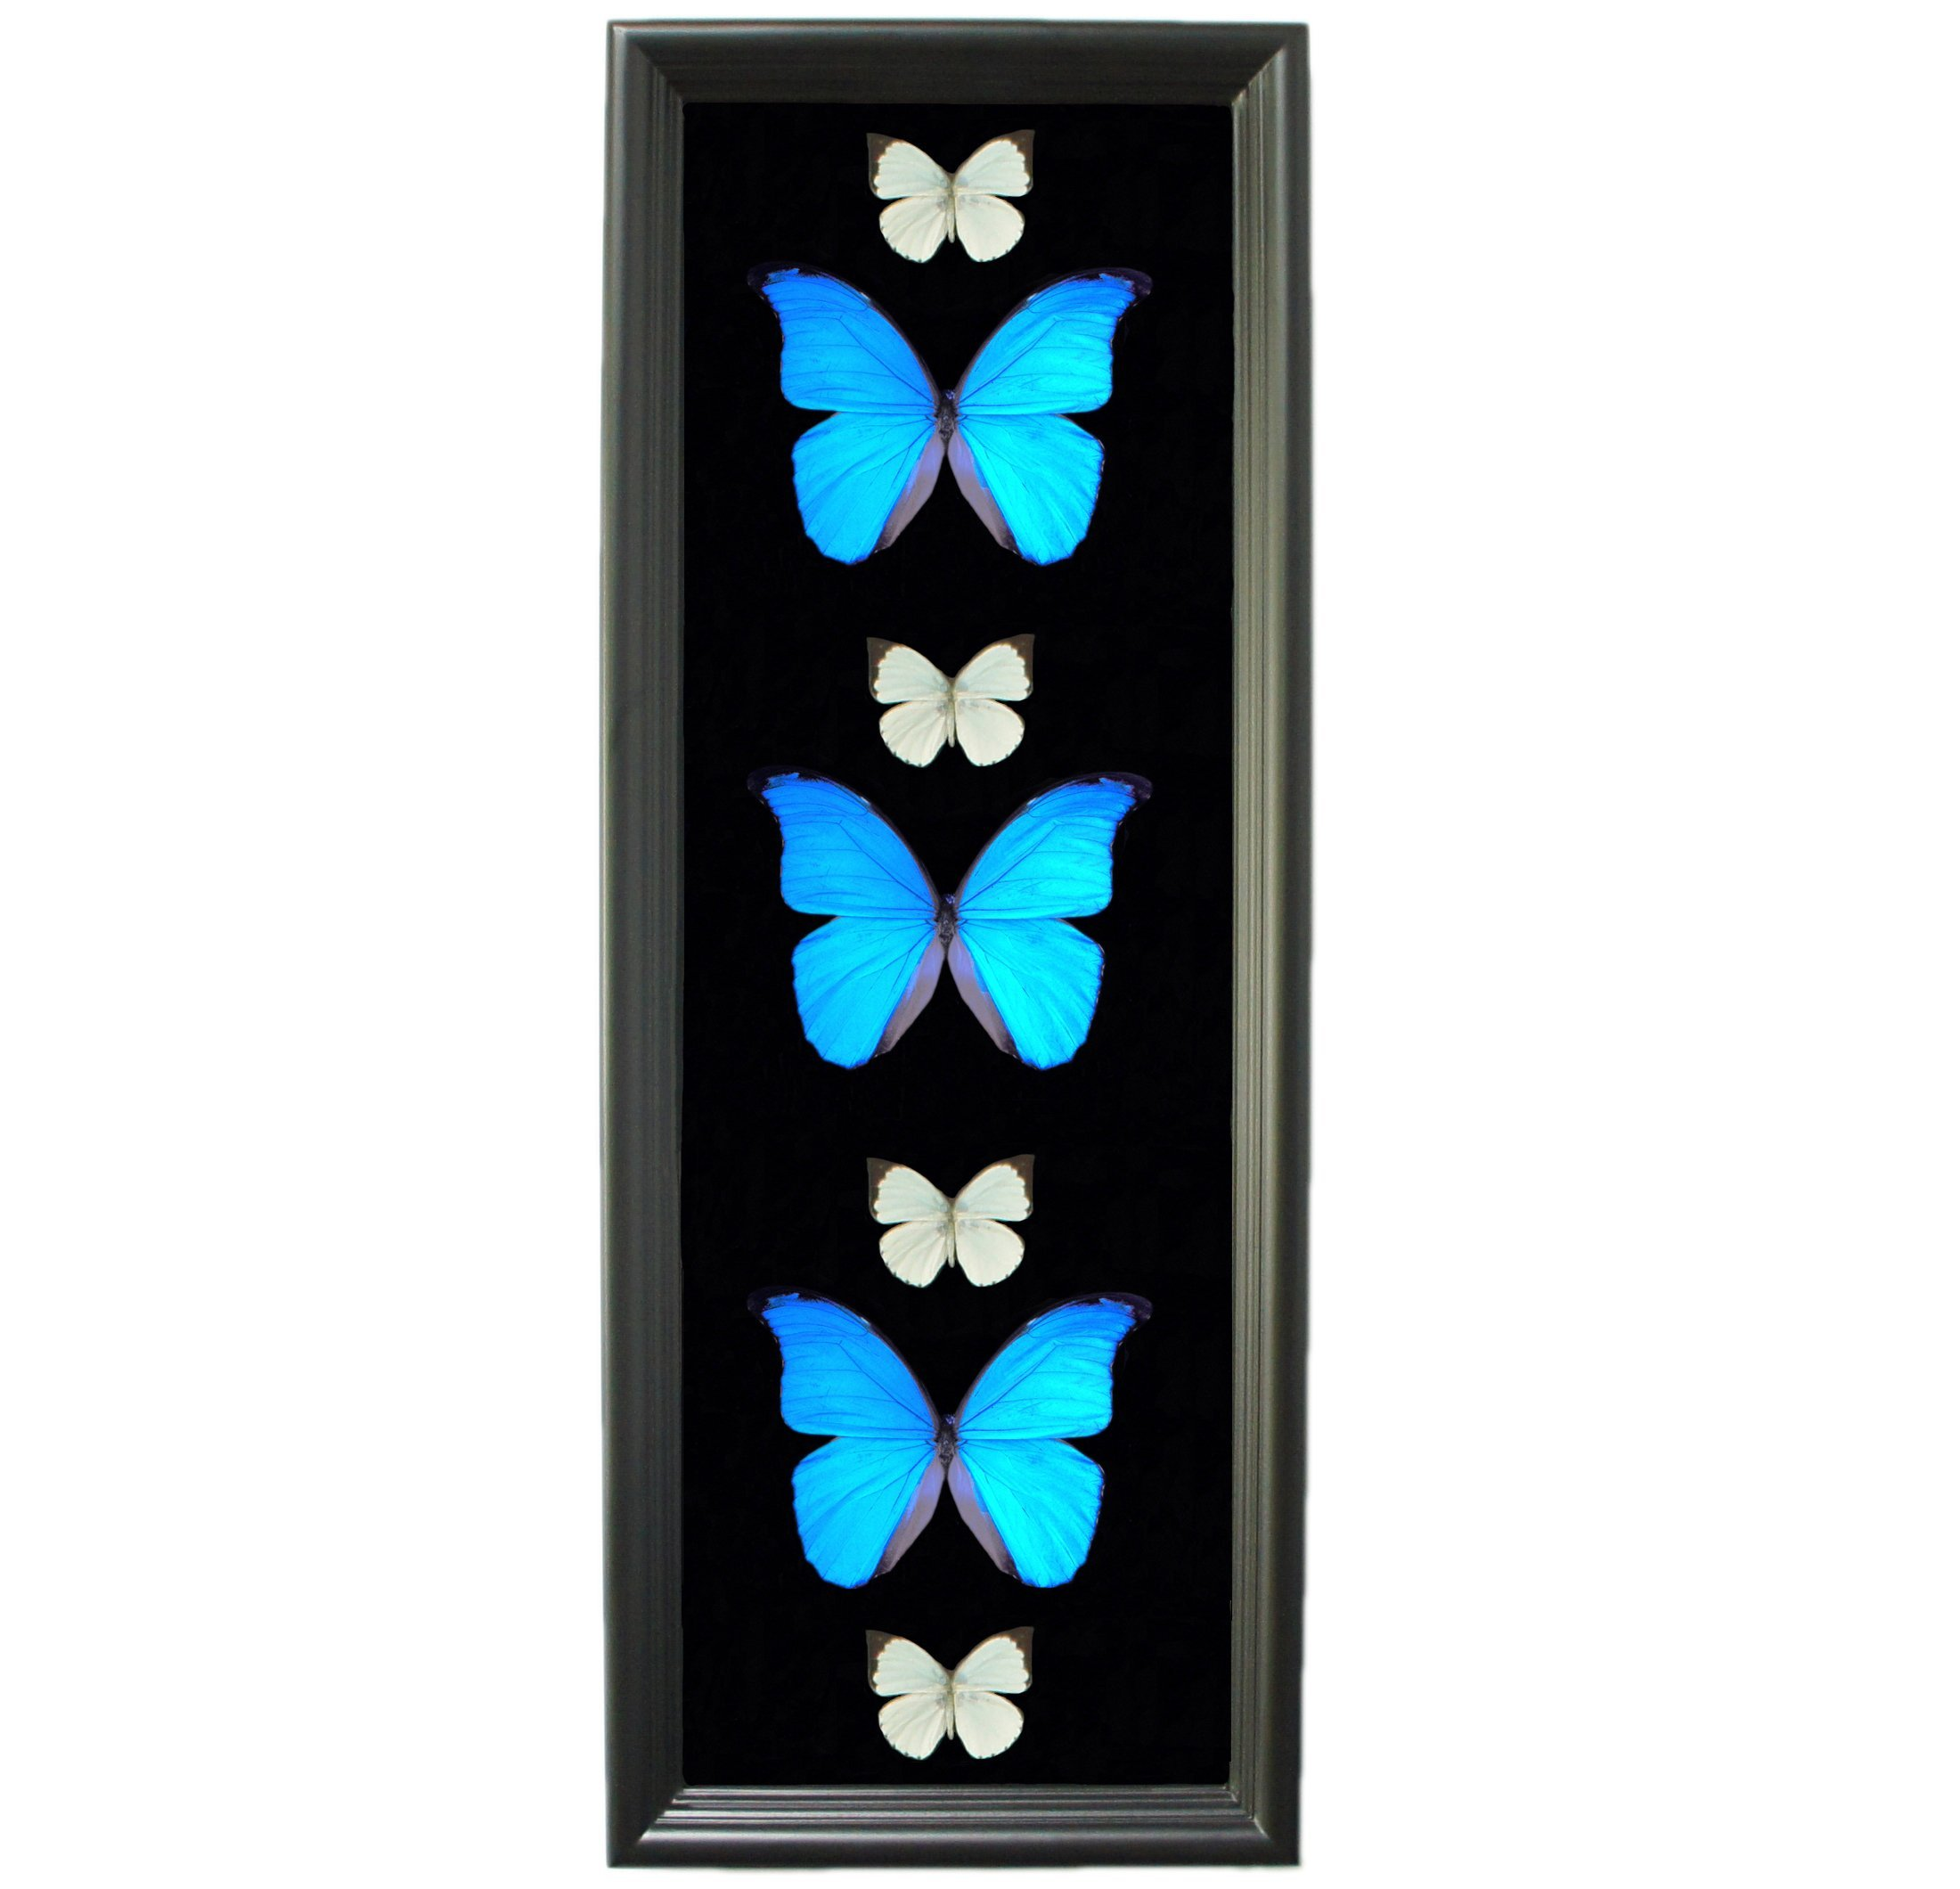 Blue Butterfly Taxidermy Shadow Box - Entryway decor for wall, Butterfly Gifts For Her